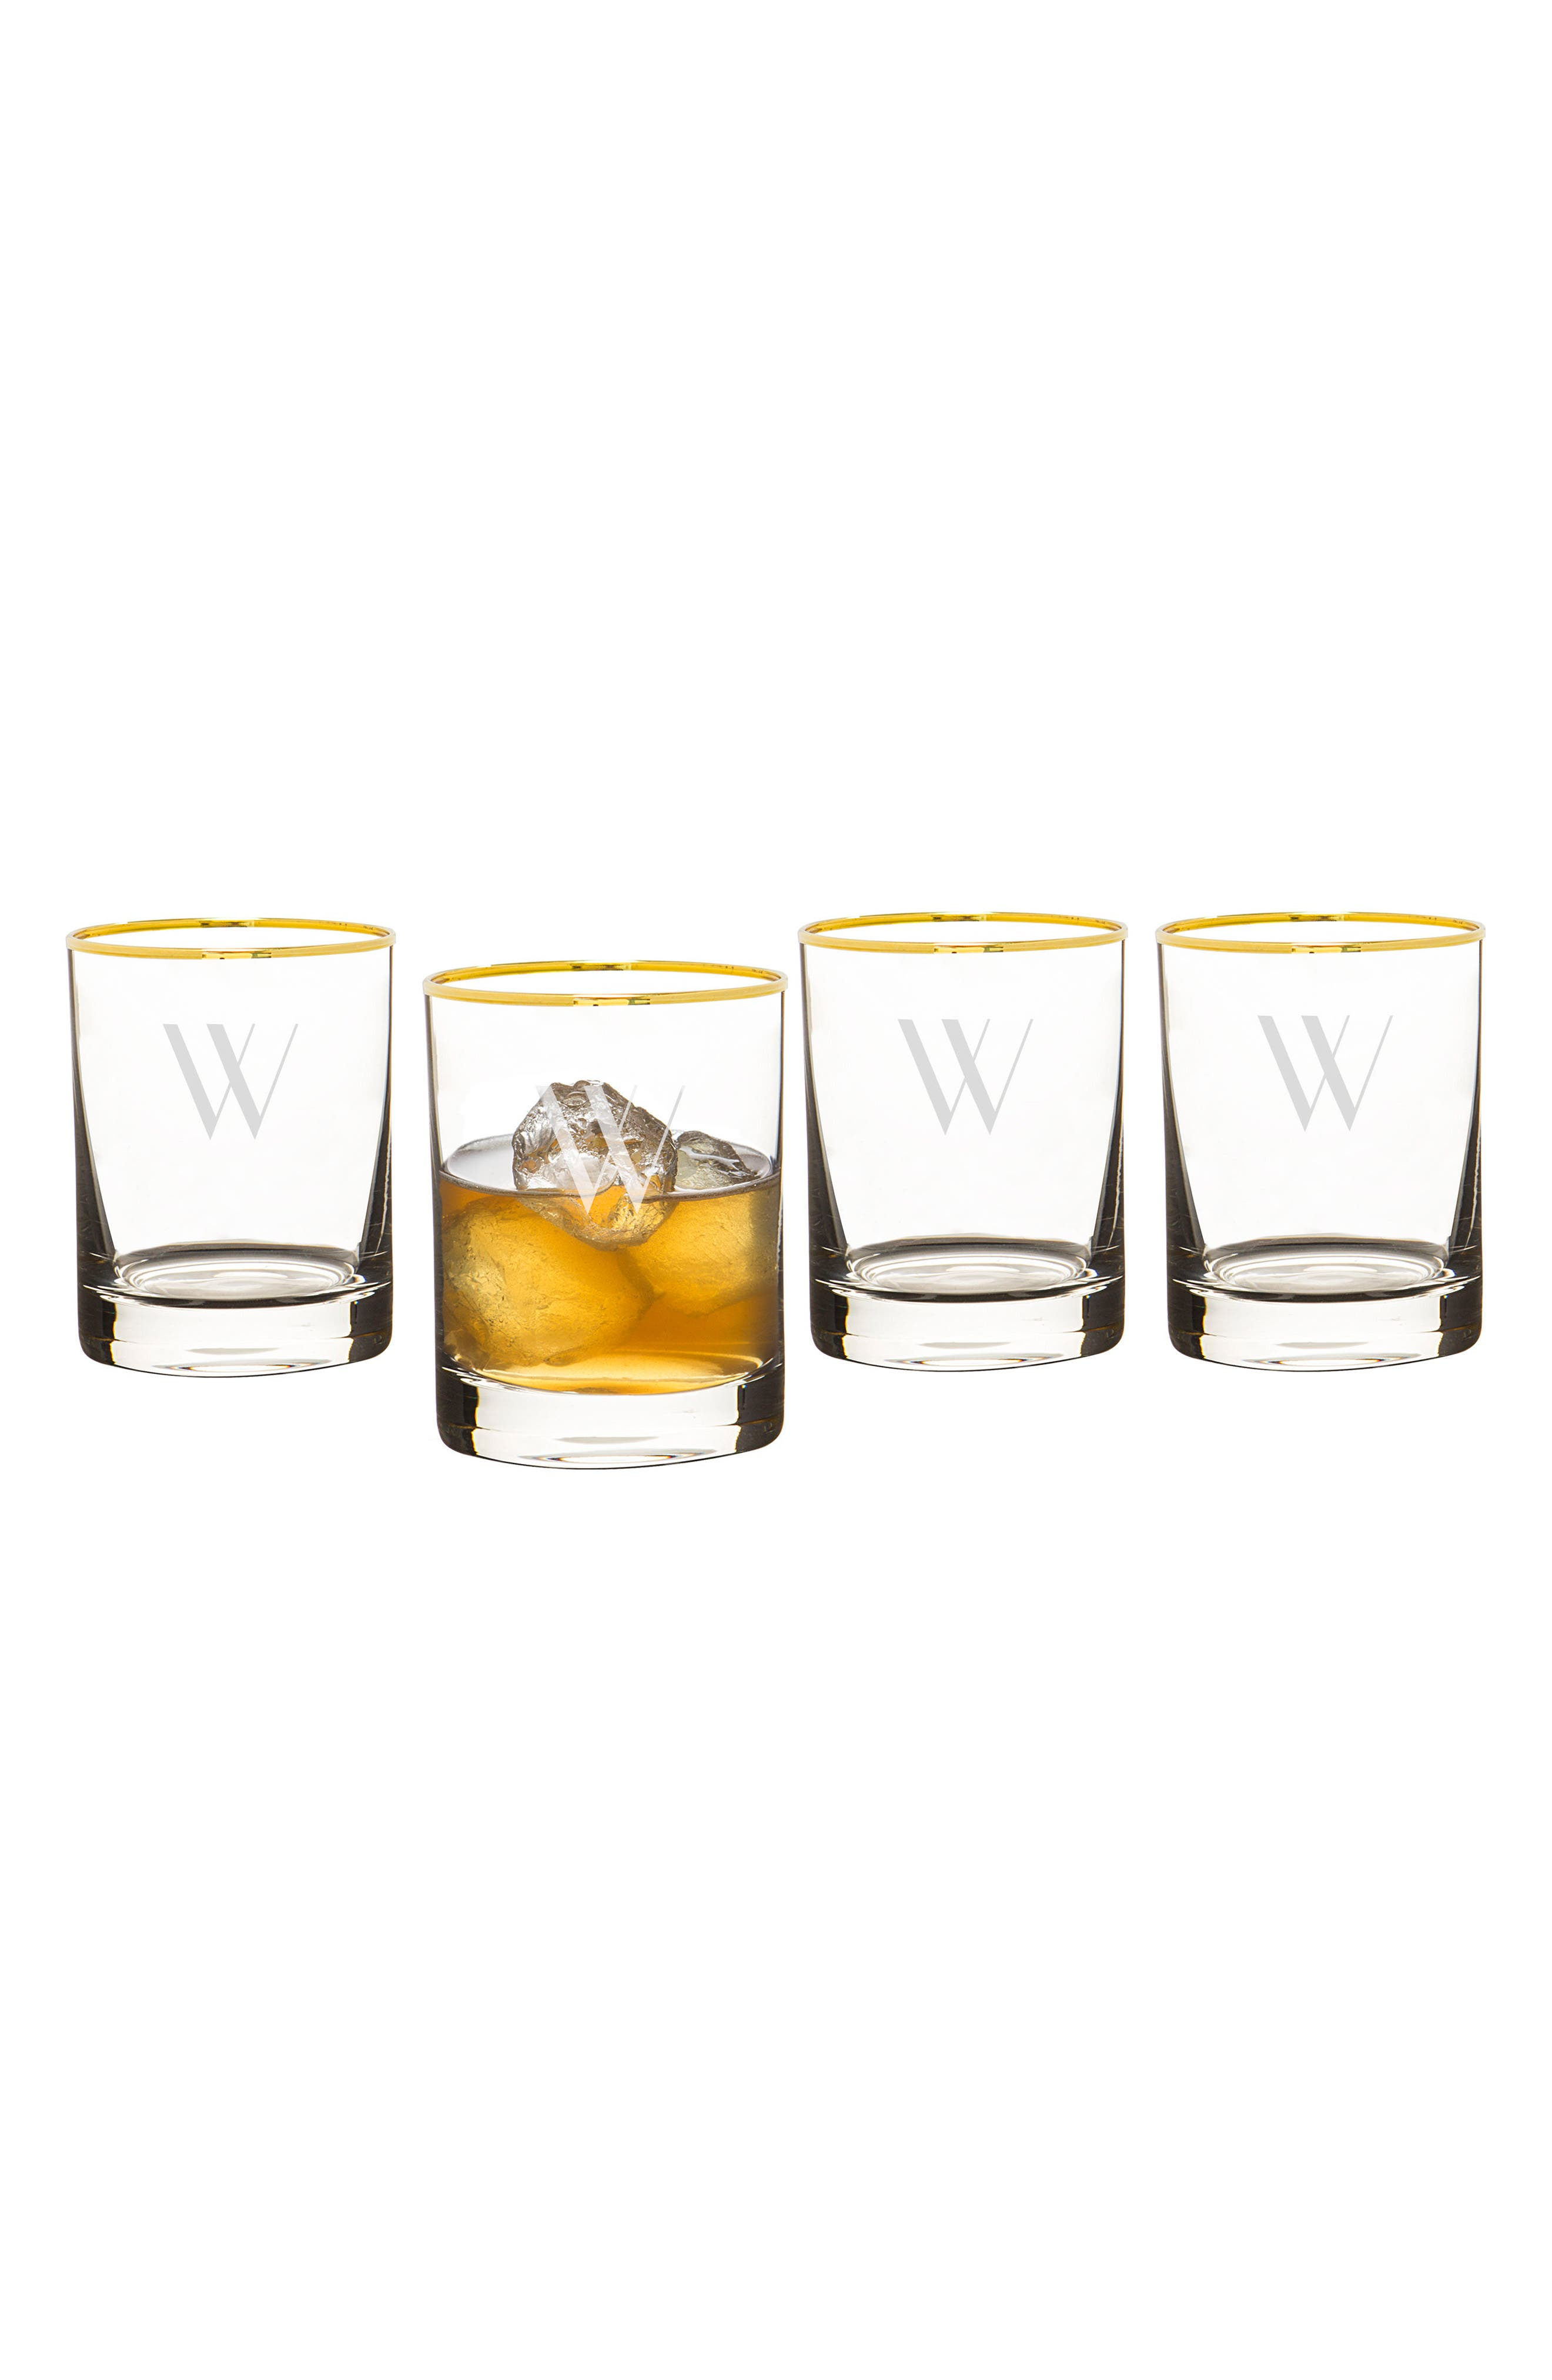 Monogram Set of 4 Double Old Fashioned Glasses,                             Main thumbnail 23, color,